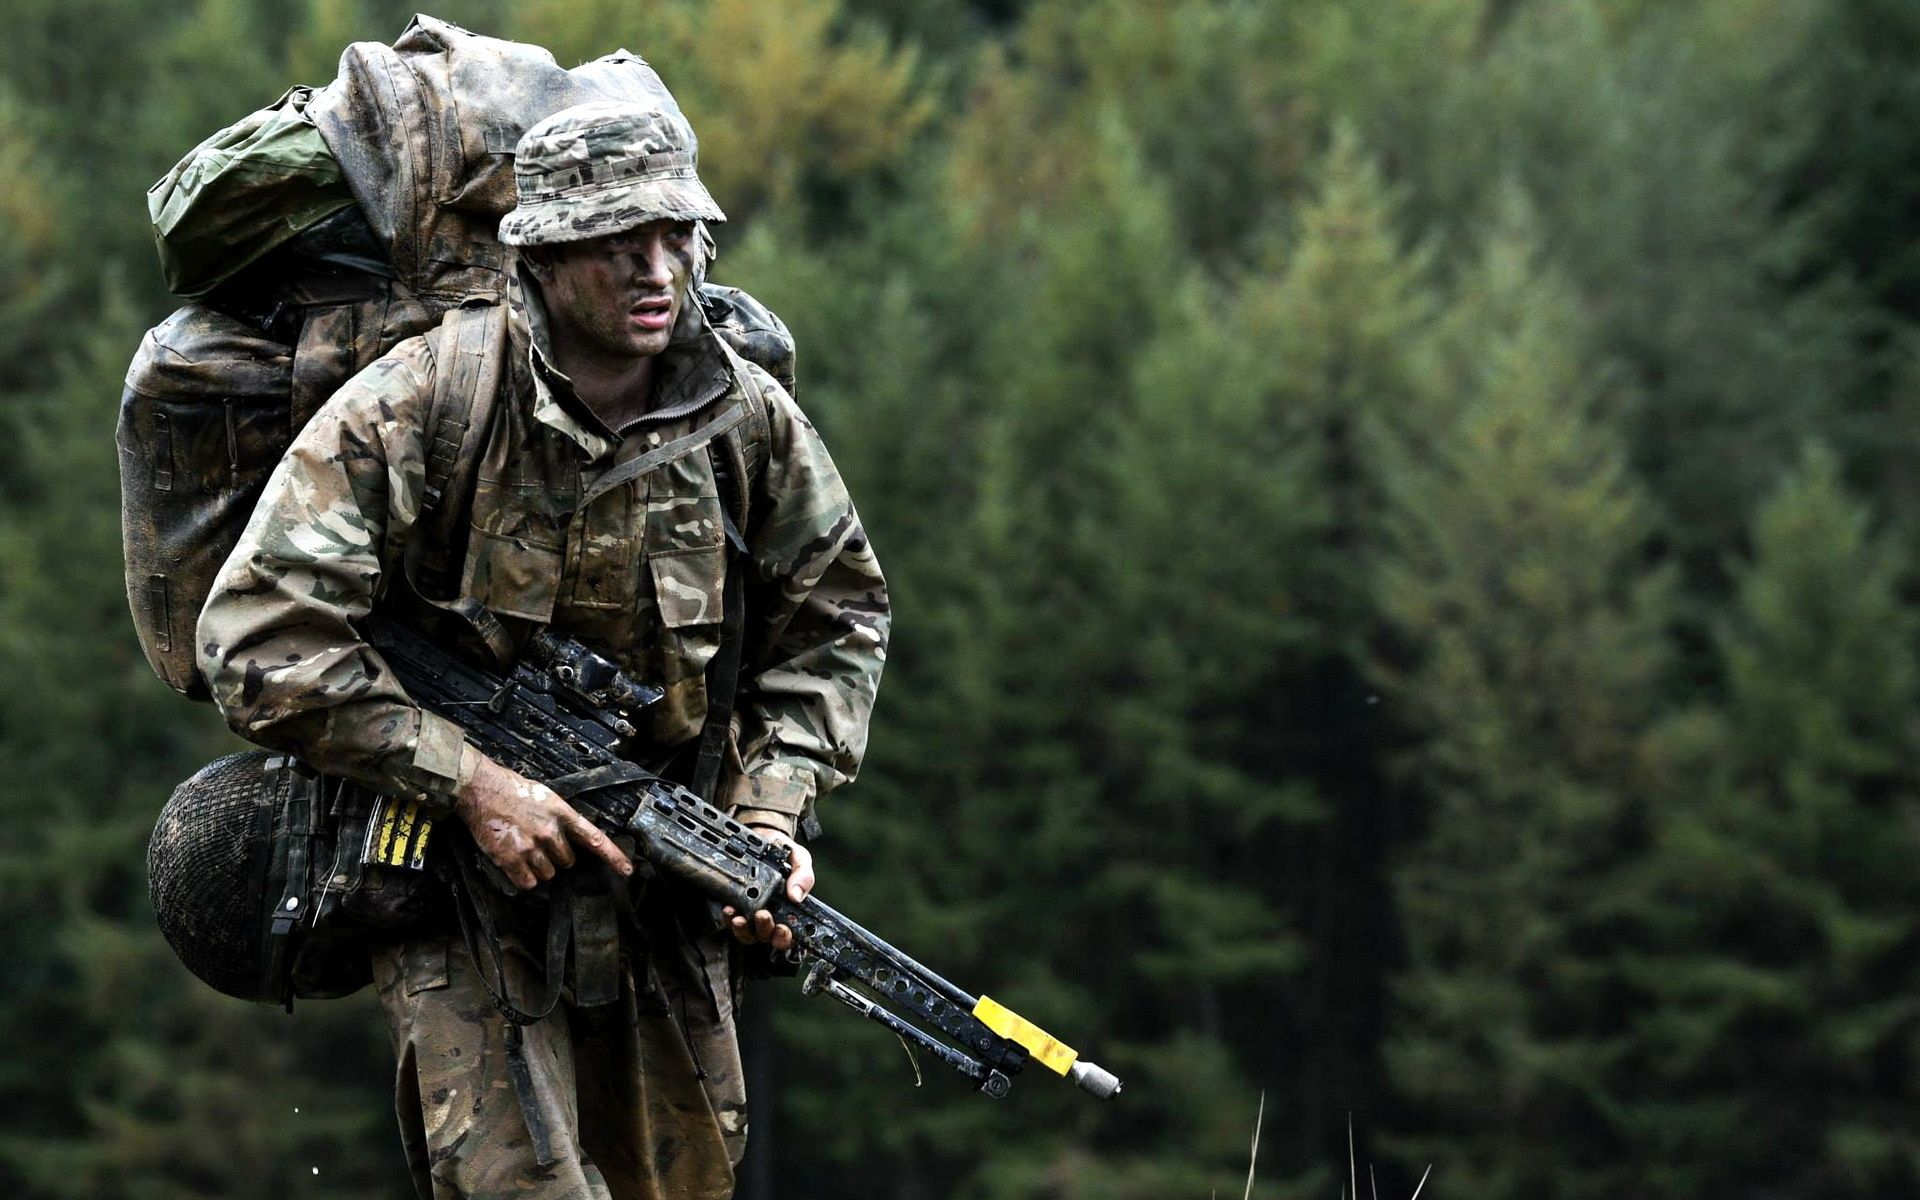 Hd military wallpapers top free hd military backgrounds wallpaperaccess - Awesome army wallpapers ...